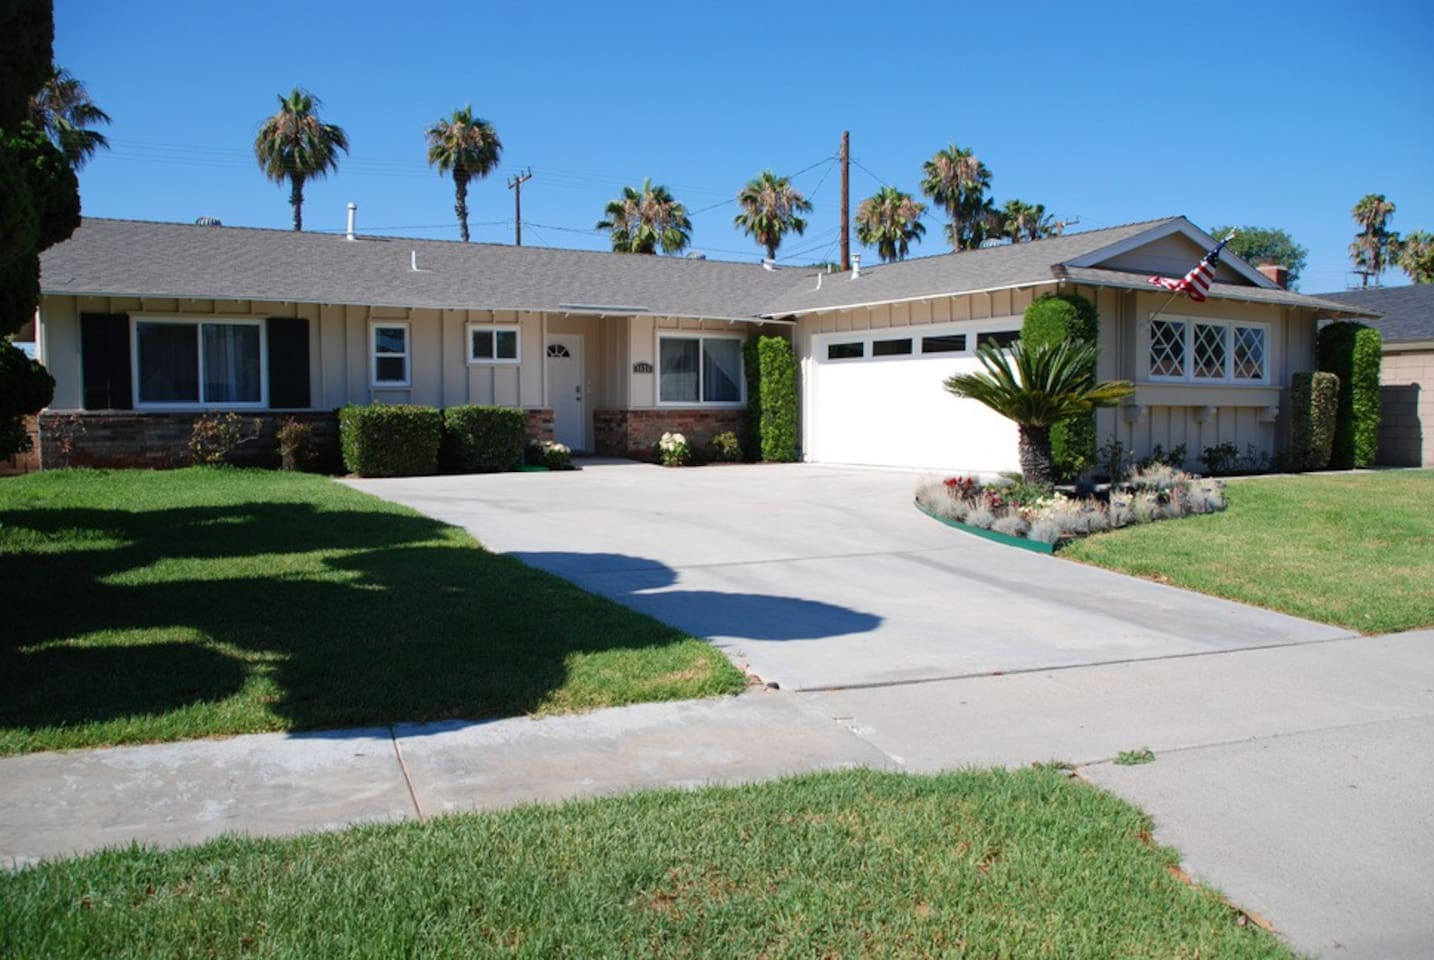 3 bedroom house near disneyland houses for rent in anaheim